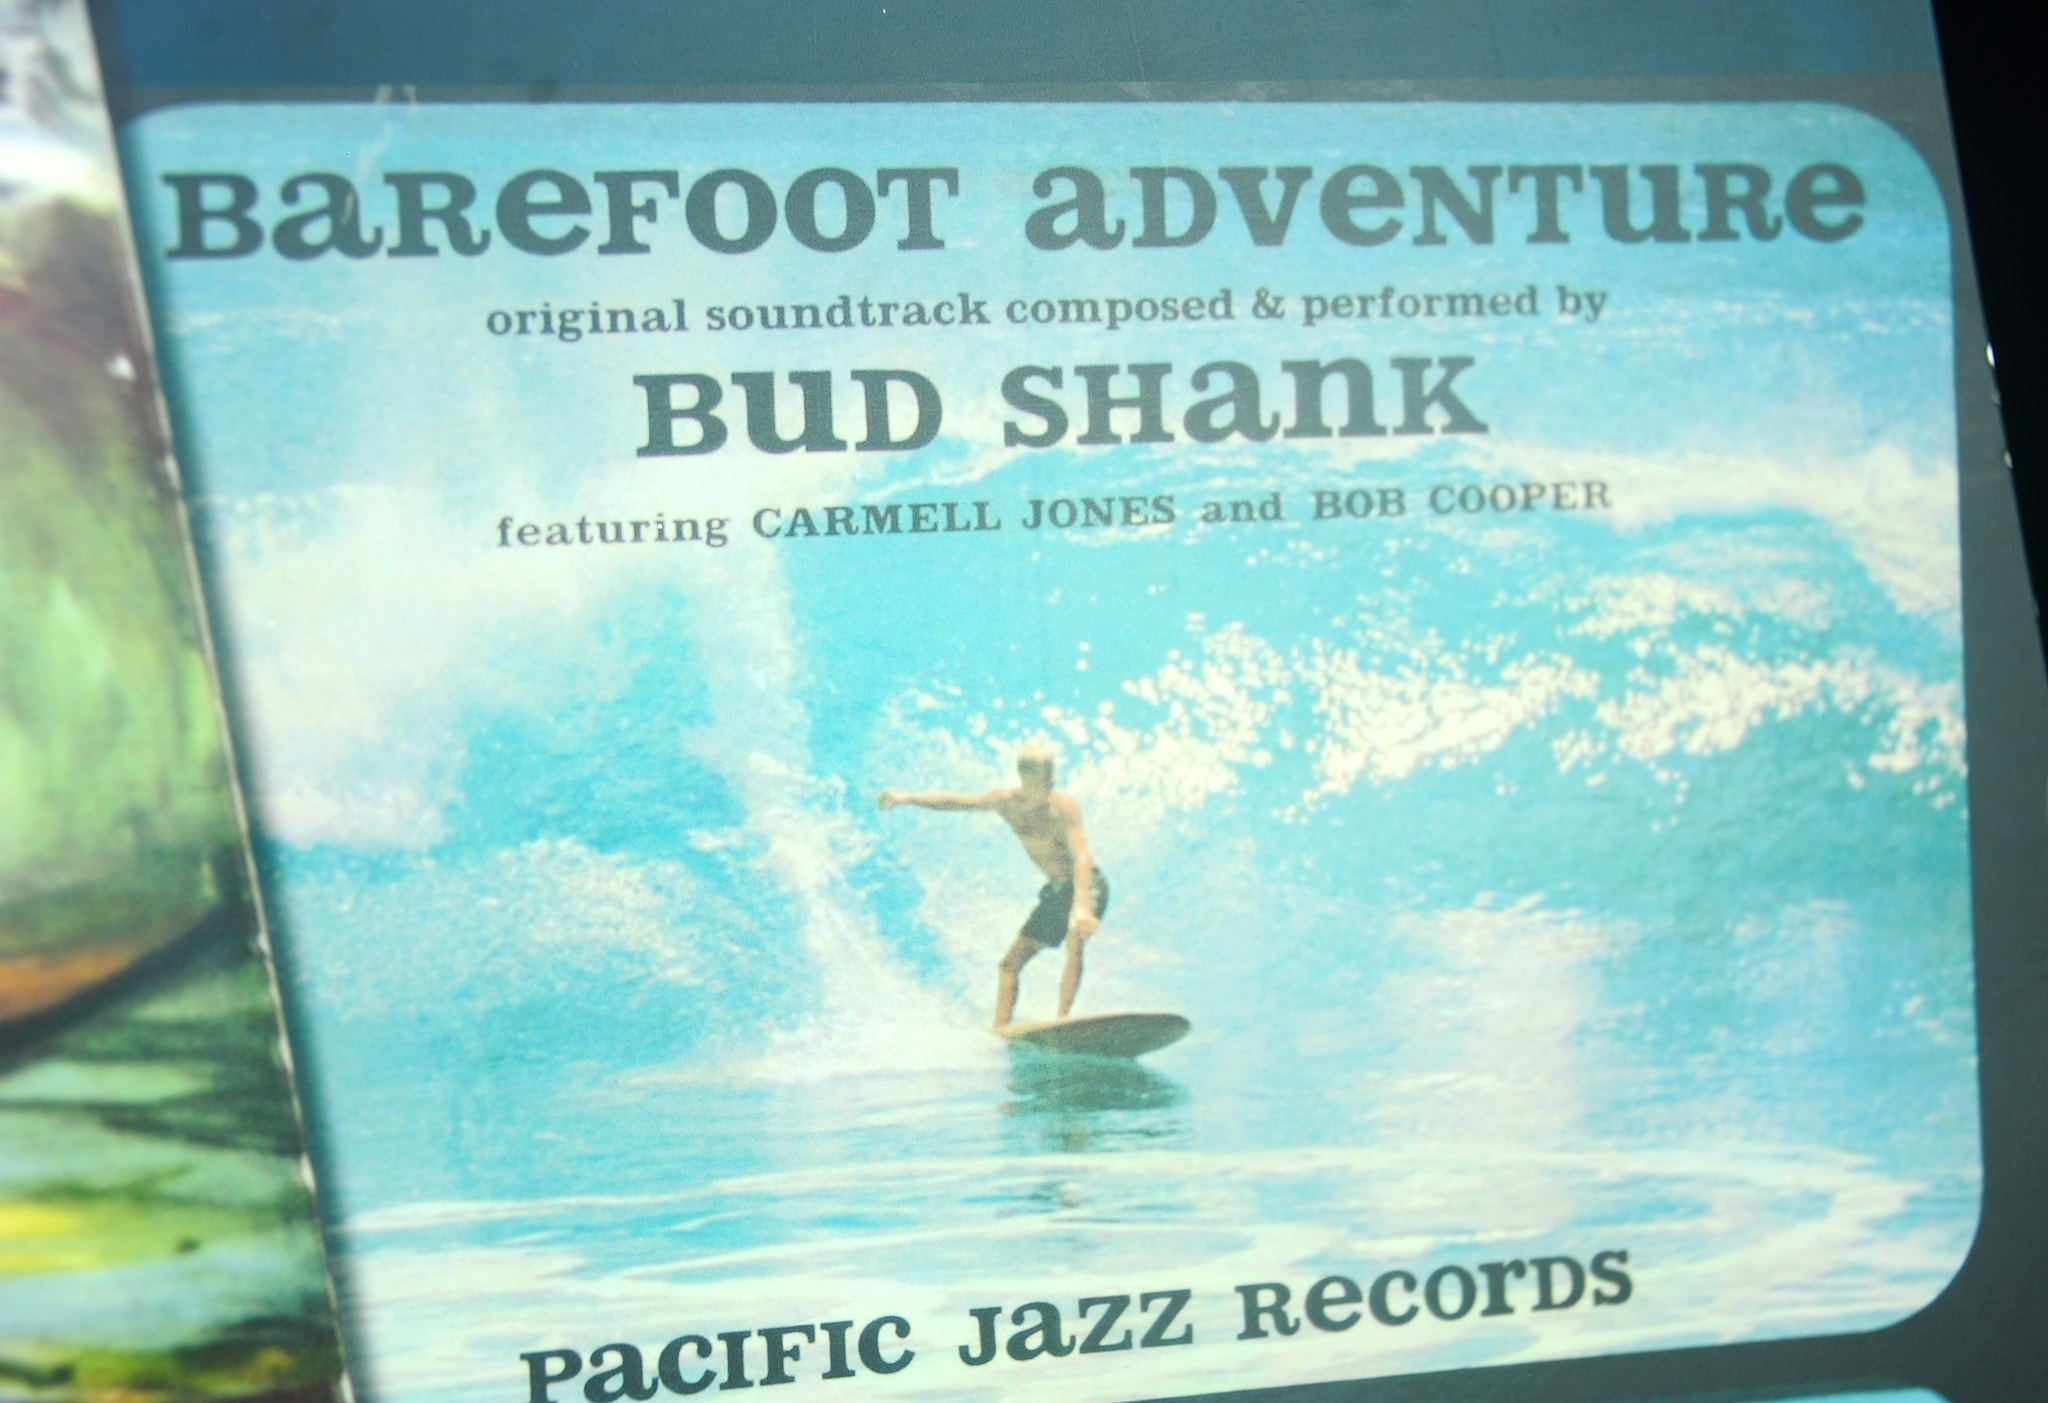 Queensland Surfers had their first experience of movies dedicated solely to surfing in January of 1962. Bruce Brown's movies Barefoot Adventure, Slippery When Wet, Surf Crazy screened at the Capitol theatre in Coolangatta and the Astor in Brisbane. The movies only had music soundtrack and Bruce Brown actually sat on stage and narrated each show.